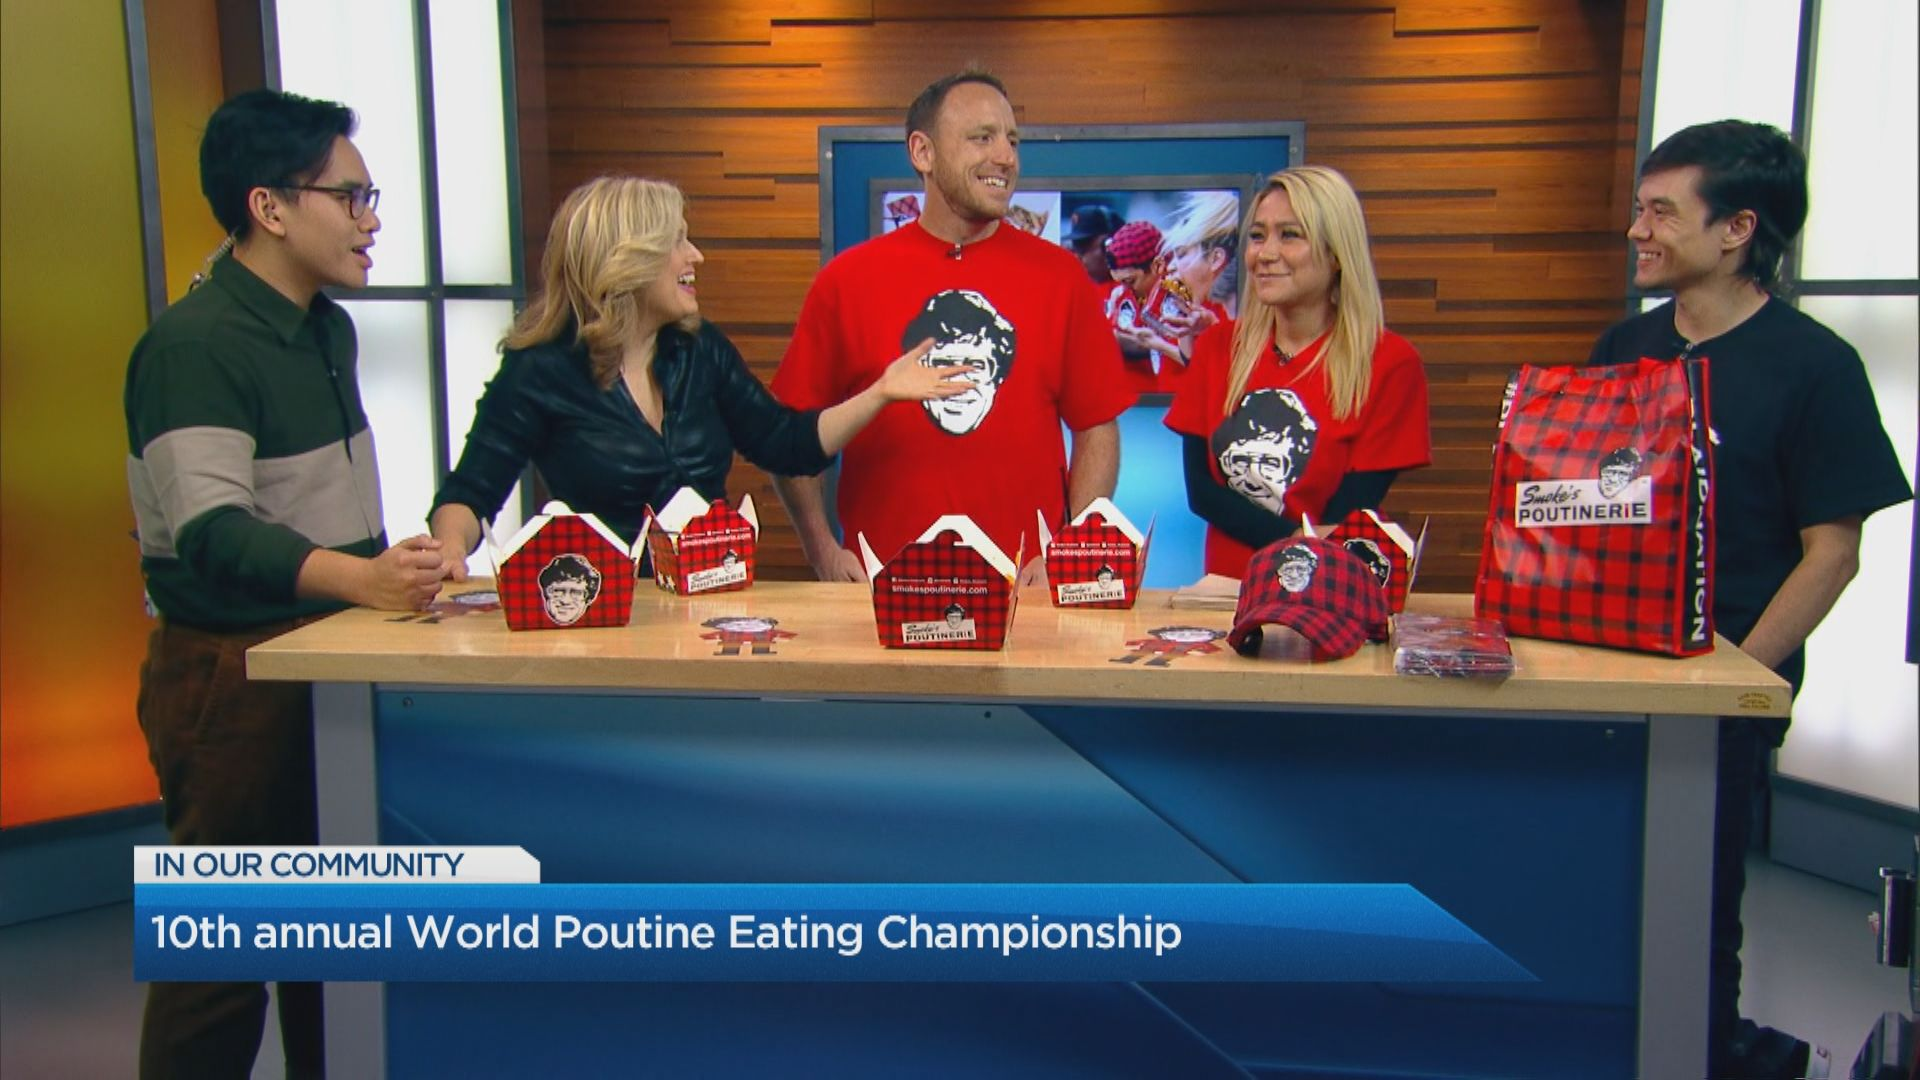 10th annual World Poutine Eating Championship